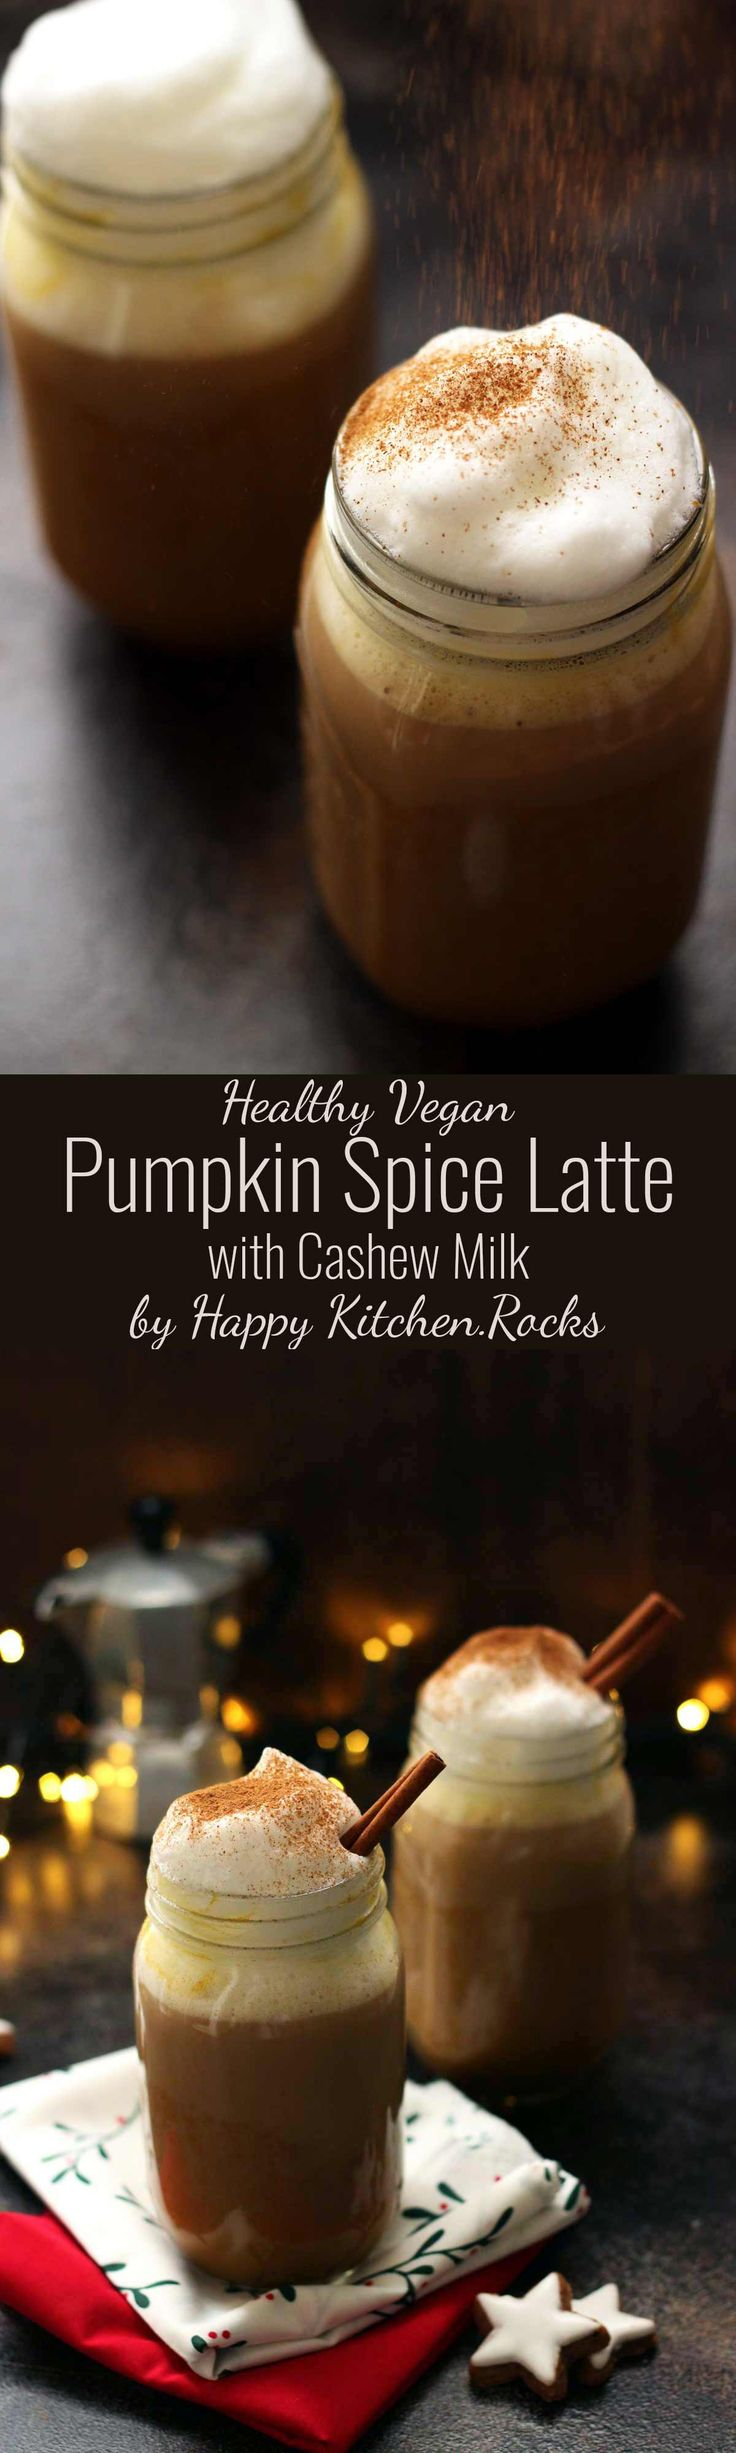 This Healthy Vegan Pumpkin Spice Latte Recipe is amazingly delicious, dairy-free and absolutely guilt-free! Made with homemade cashew milk using The NutraMilk, maple syrup, real pumpkin and of course pumpkin pie spice. #coffee #latte #vegan #pumpkin #pumpkinpiespice #pumpkinspicelatte #christmasrecipes #TheNutraMilk #Pmedia #ad #fallrecipes #recipes #healthyrecipes #comfortfood #beveragerecipe #hotbeverage #veganrecipes #dairyfree #cozy #hygge #healthyfood #healthyfoodrecipes